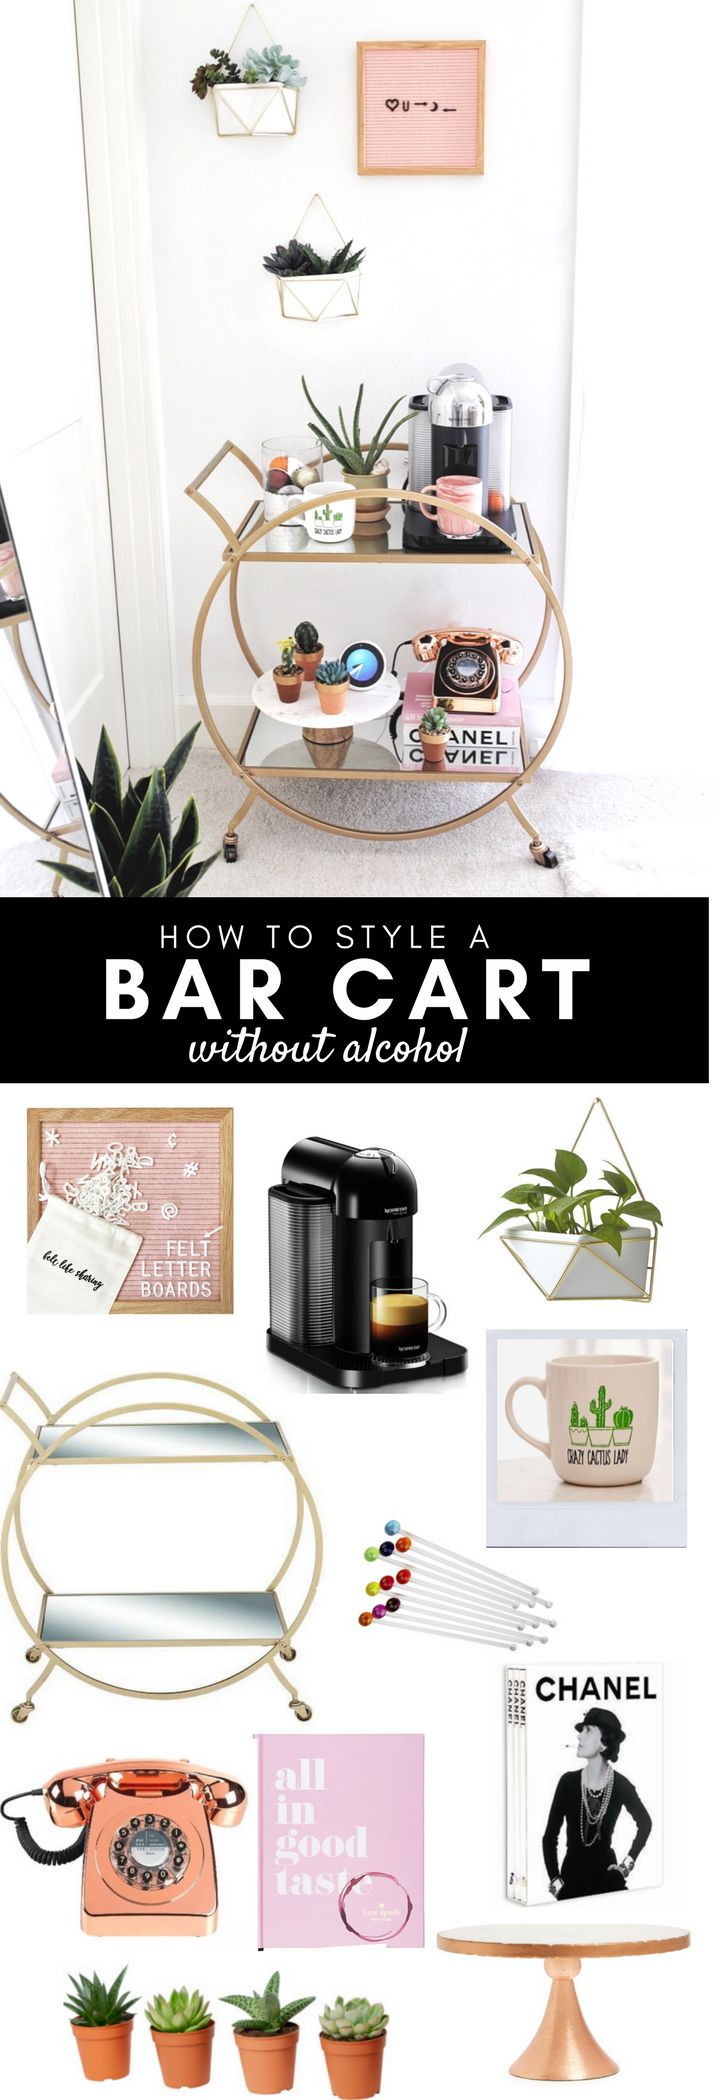 Best Bar cart decor idea | Non Alcohol bar, Bar cart styling, non traditional bar cart styling | Gypsy Tan